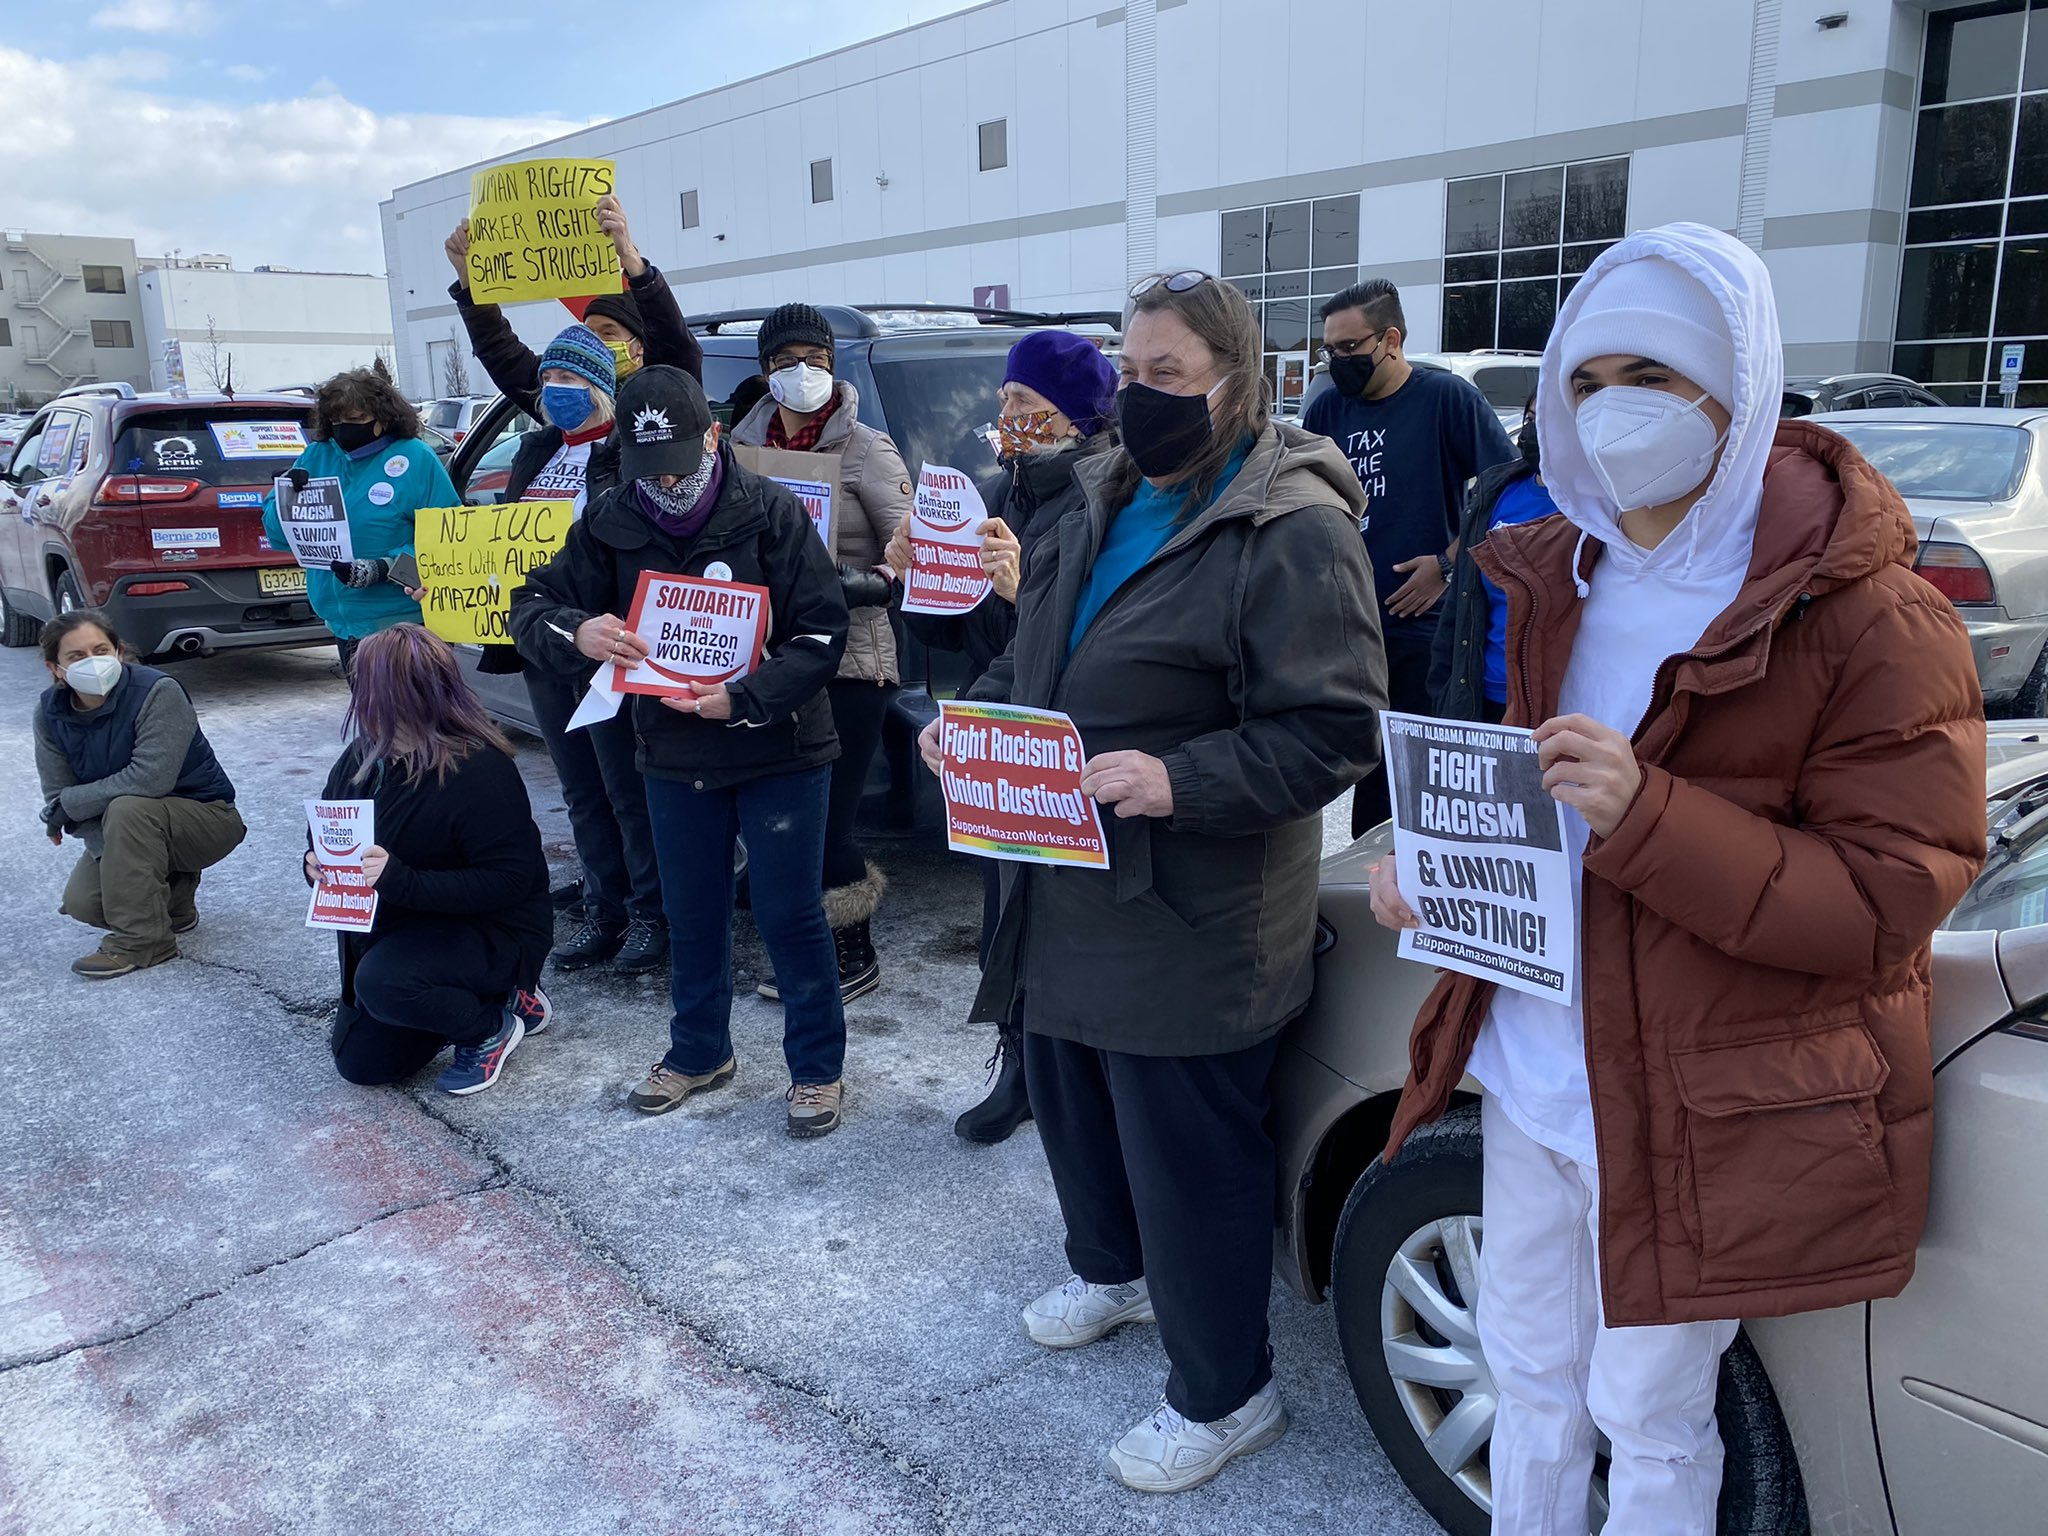 National Day of Solidarity With Alabama Amazon Workers - Carteret, NJ